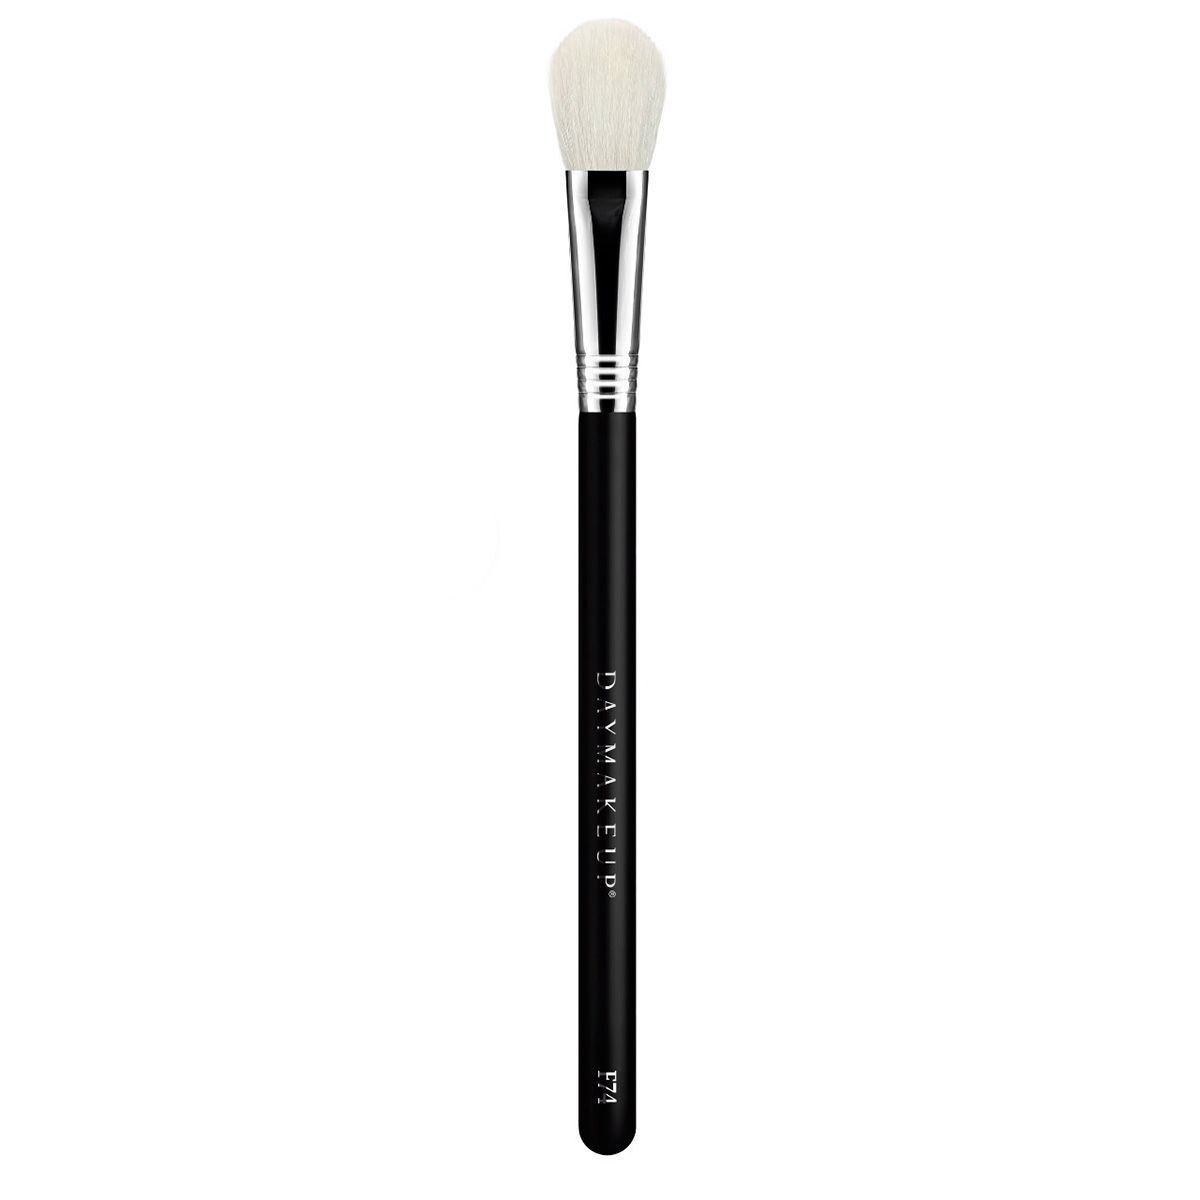 Pincel F74 Iluminador Highlight Definer Brush Daymakeup